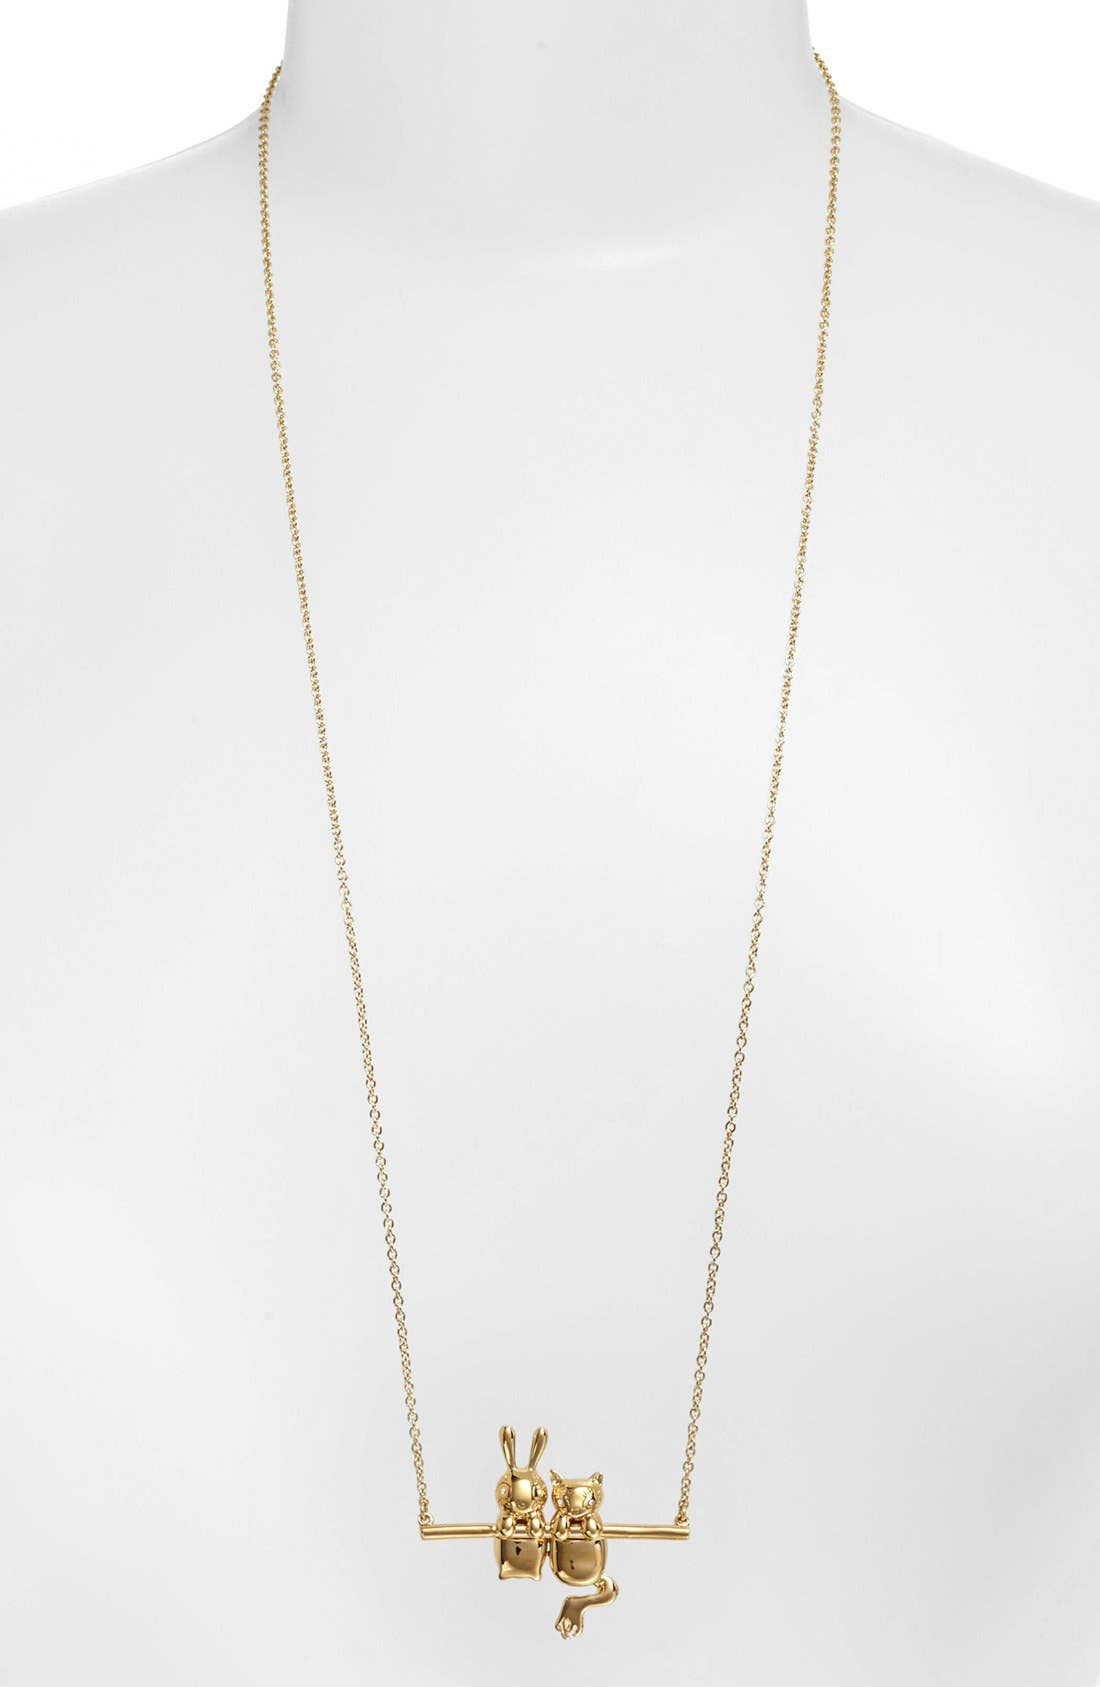 Main Image - MARC BY MARC JACOBS 'Dynamite - Rue & Bunny' Pendant Necklace